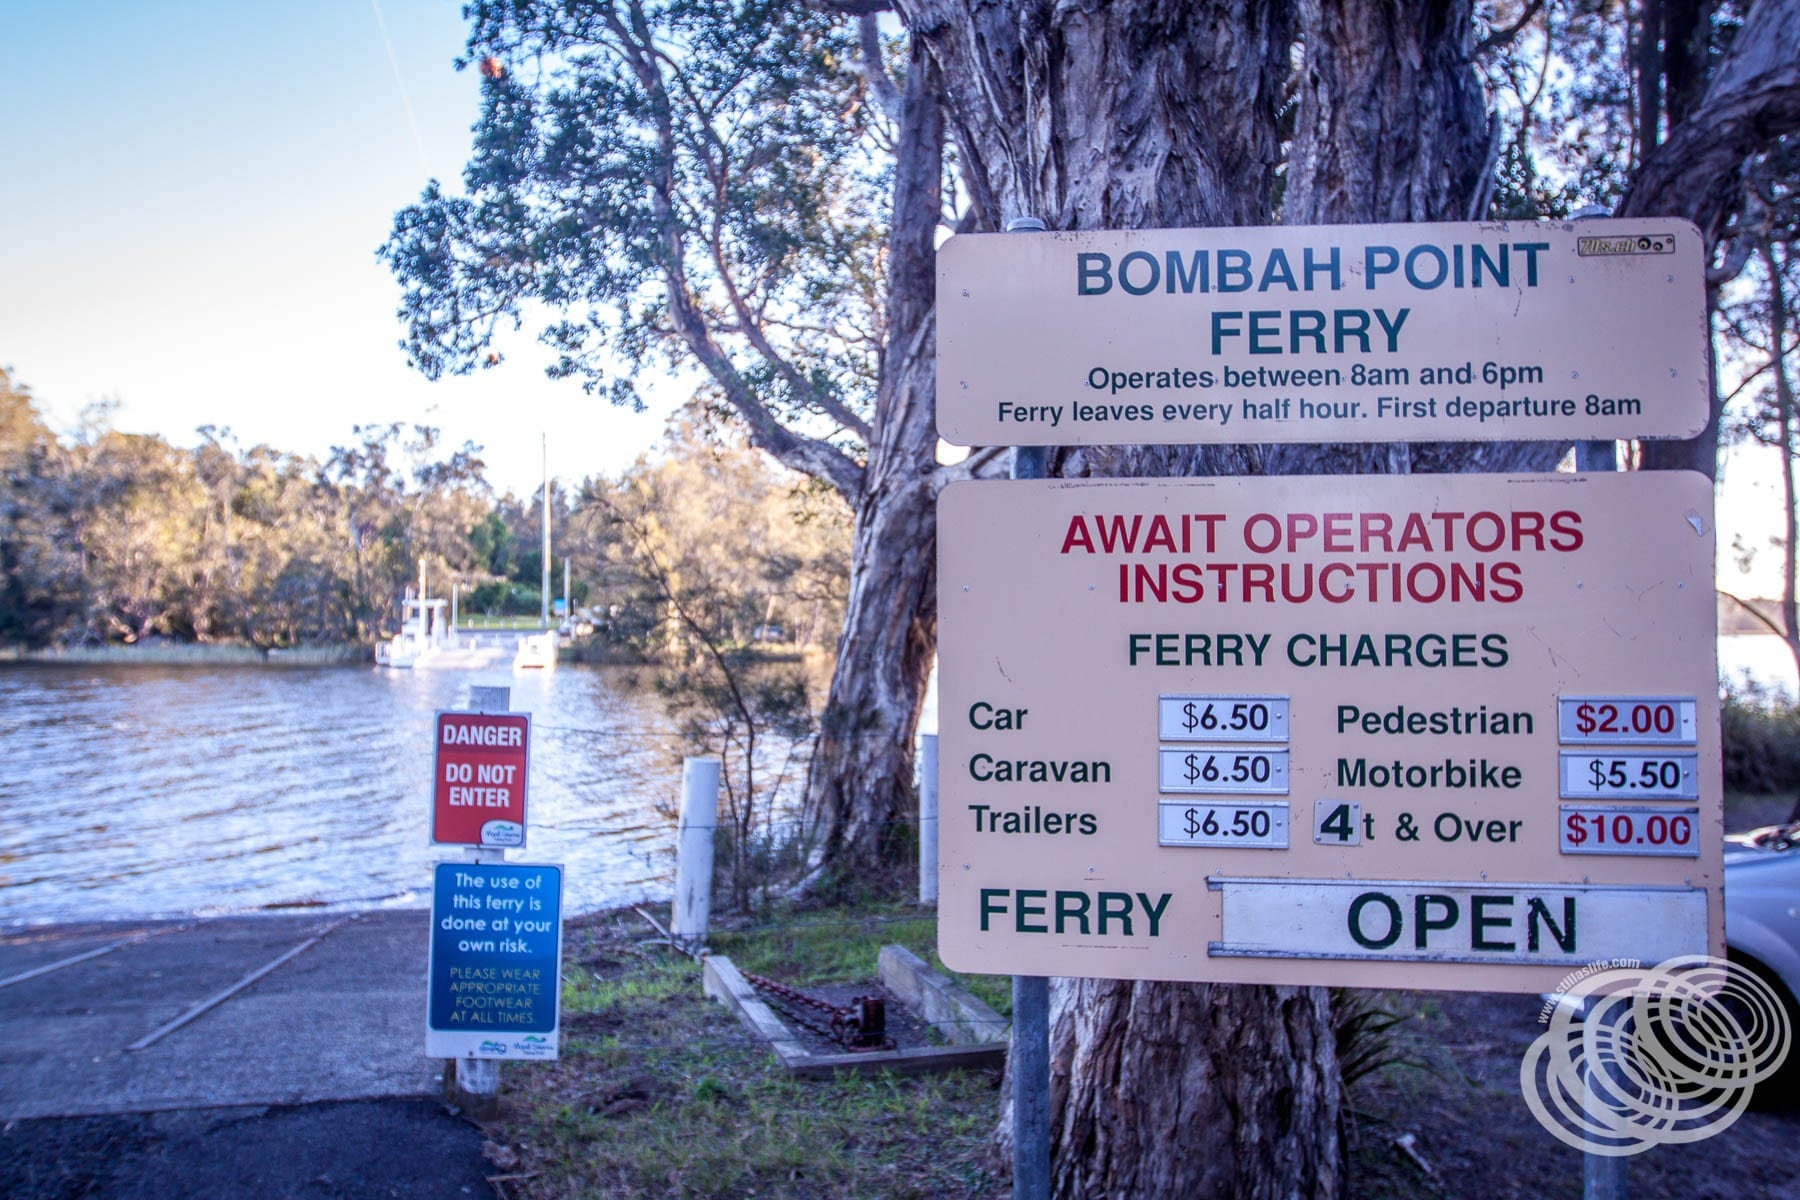 Bombah Point Ferry Prices